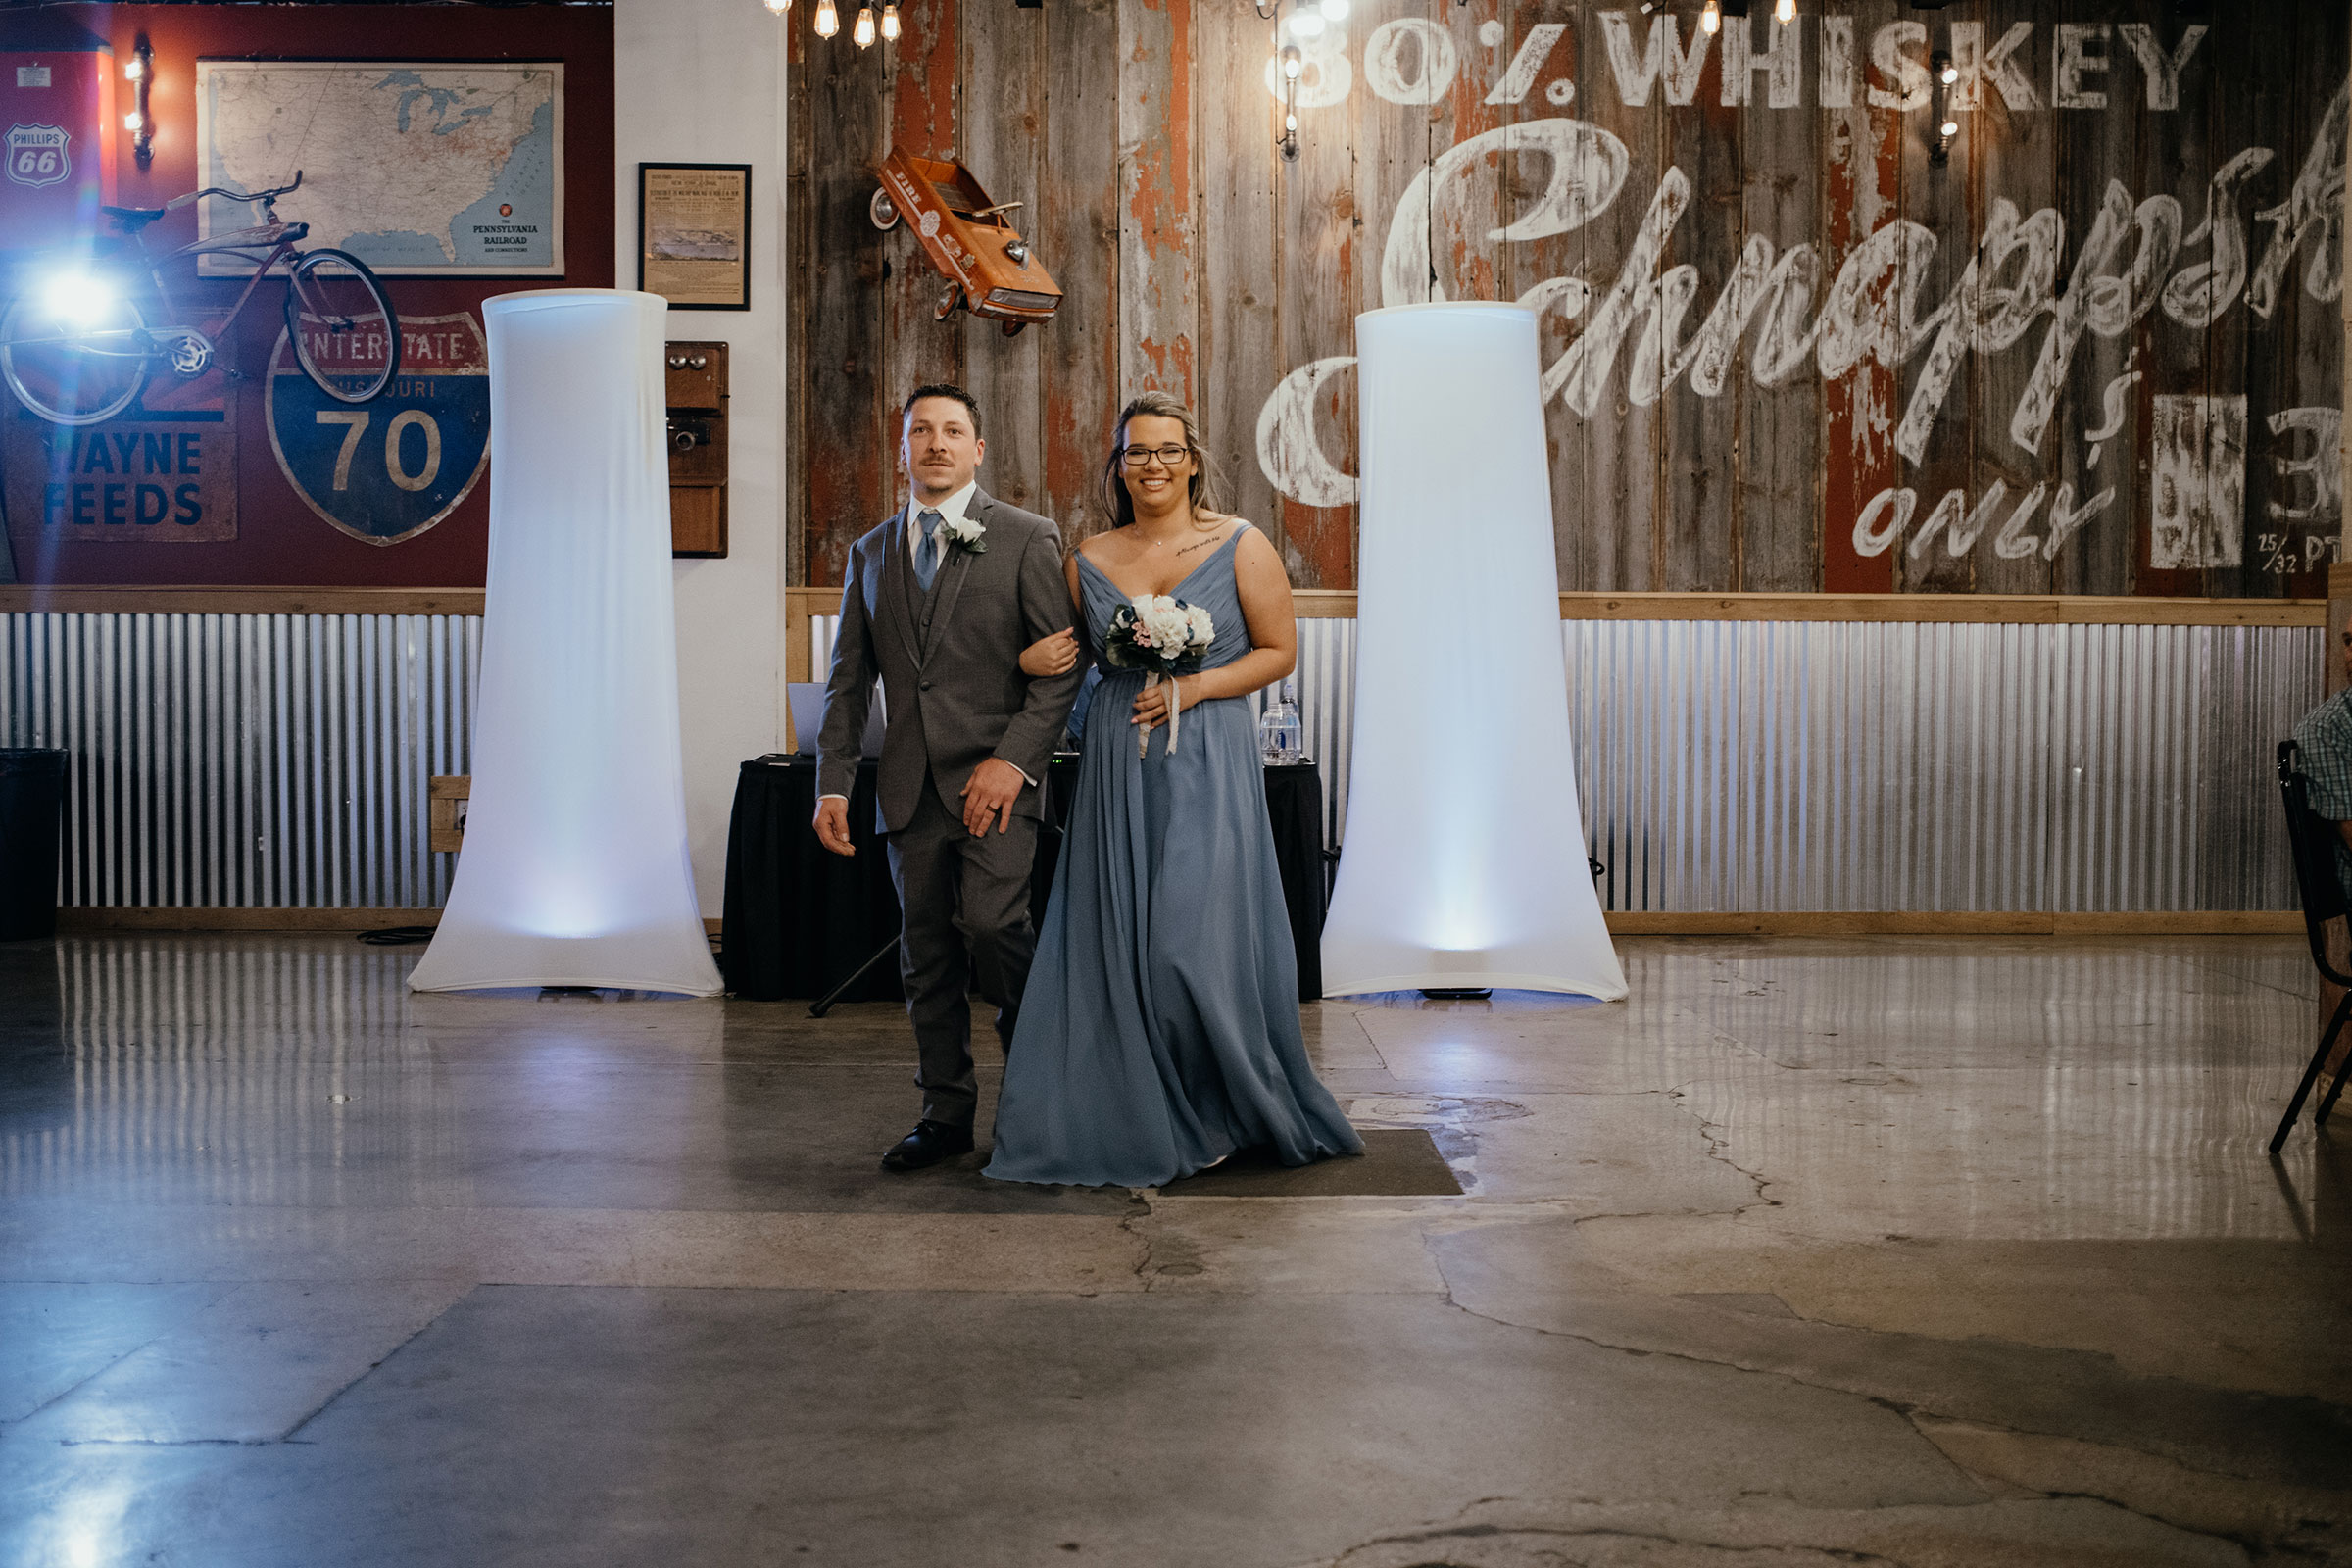 bridesmaid-and-groomsmen-walking-smiling-decades-event-center-building-desmoines-iowa-raelyn-ramey-photography..jpg